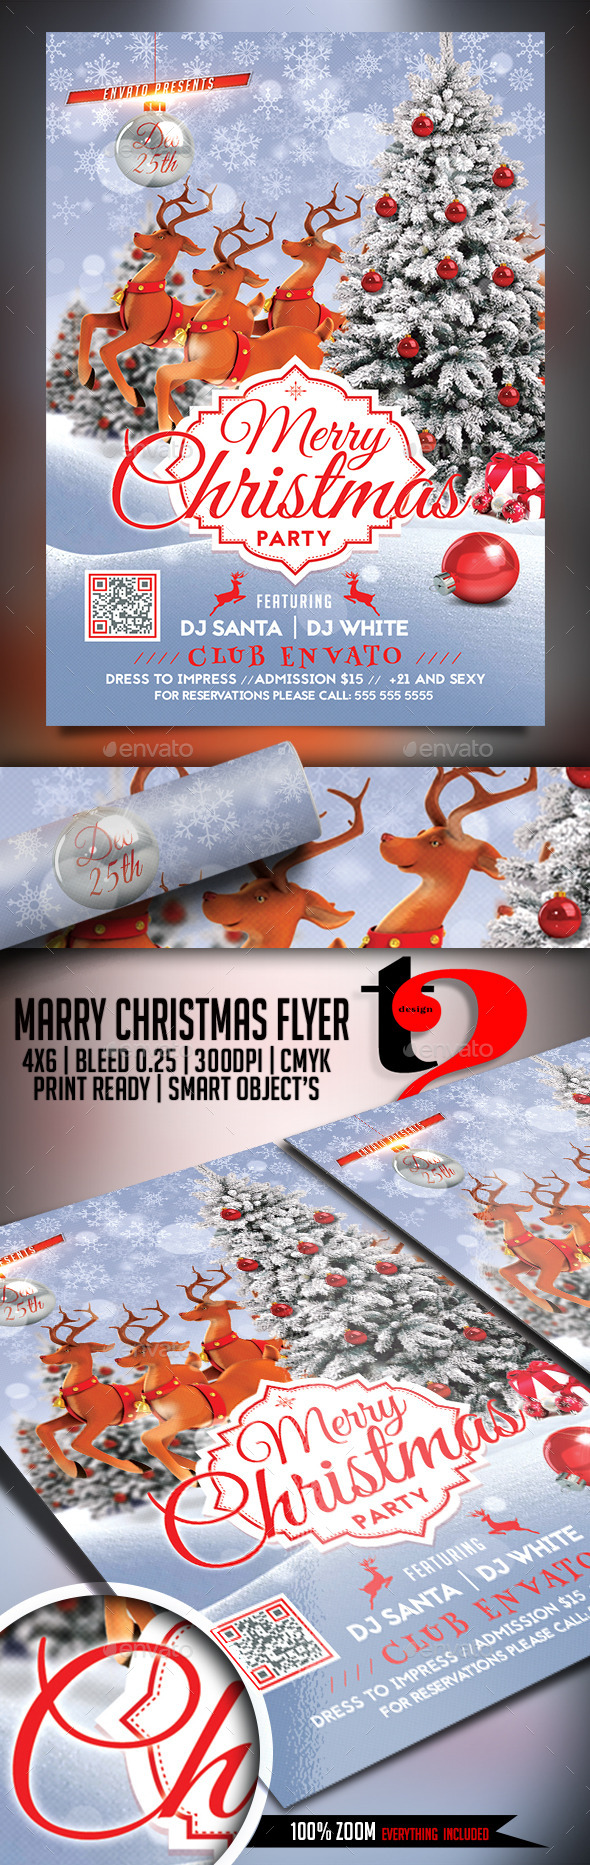 Christmas Party-Merry Christmas Flyer - Holidays Events